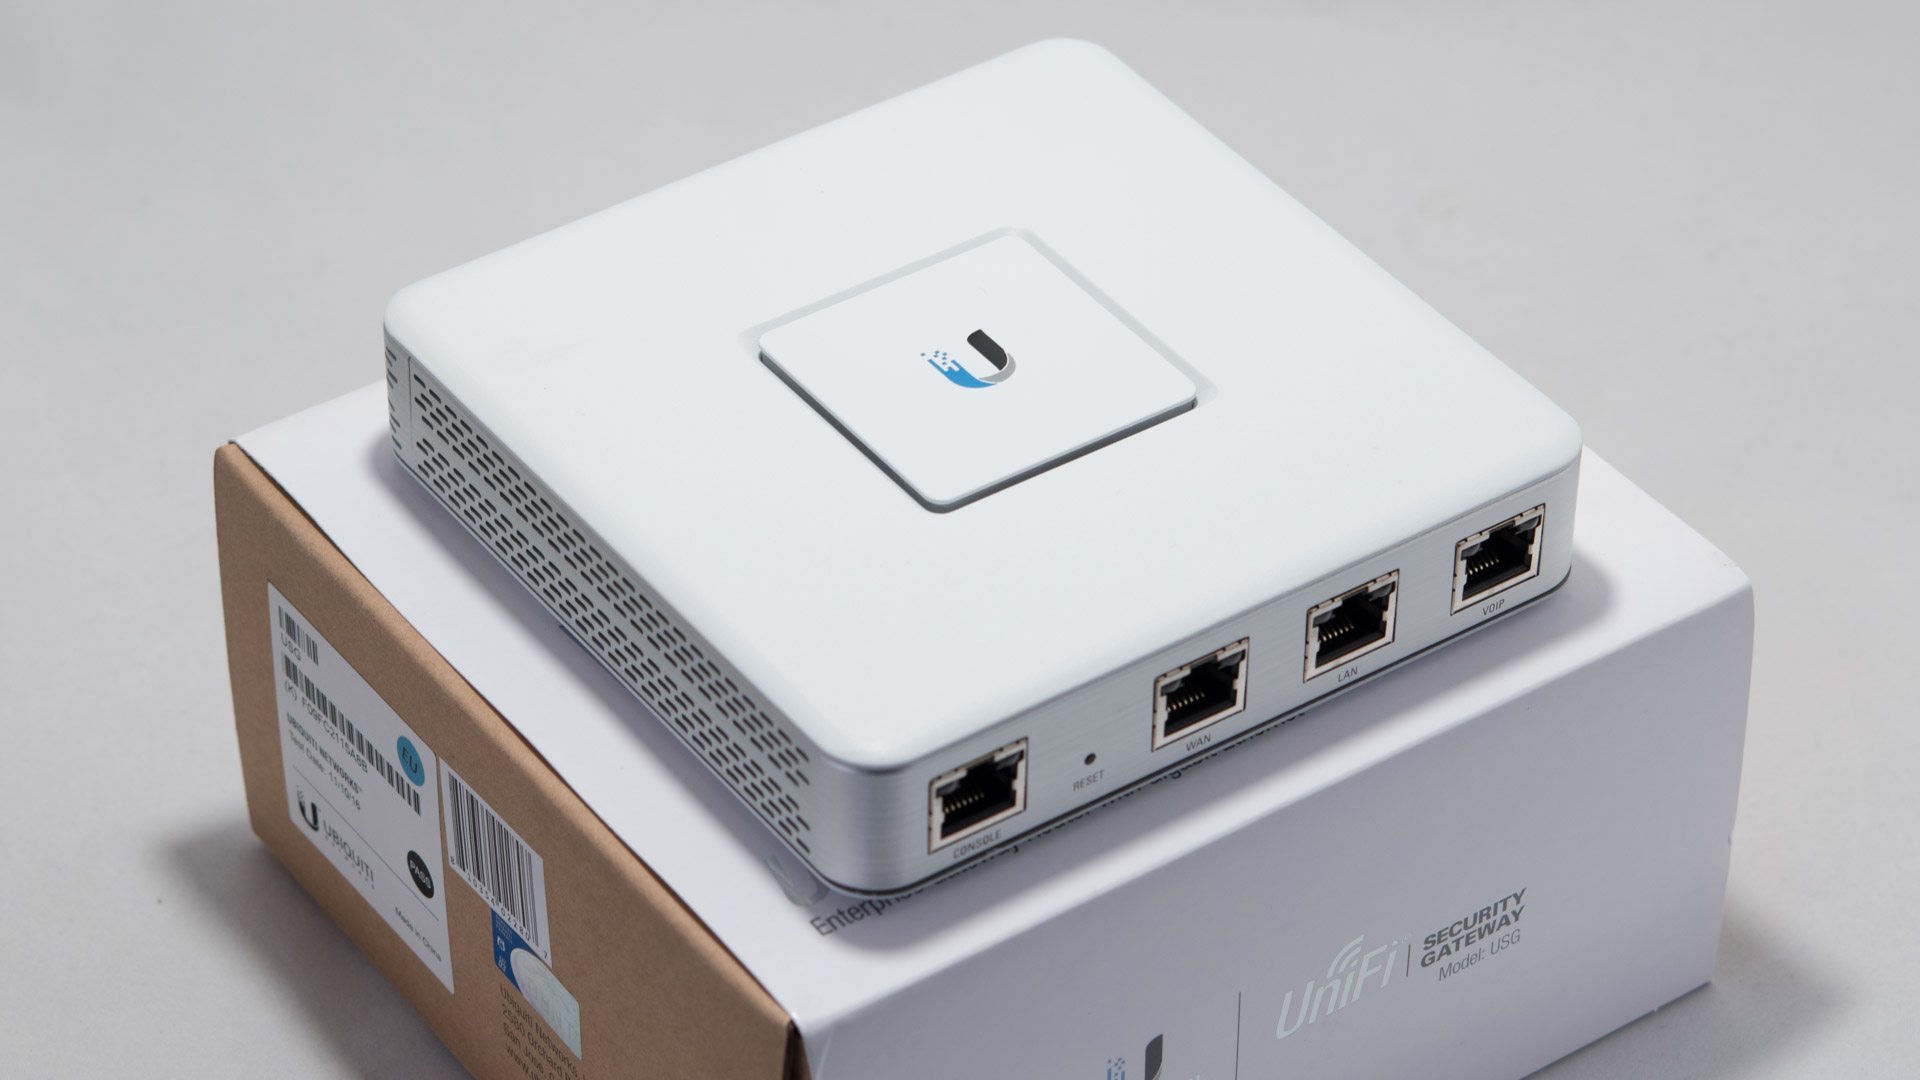 Das Ubiquiti UniFi Security Gateway im Test, die volle